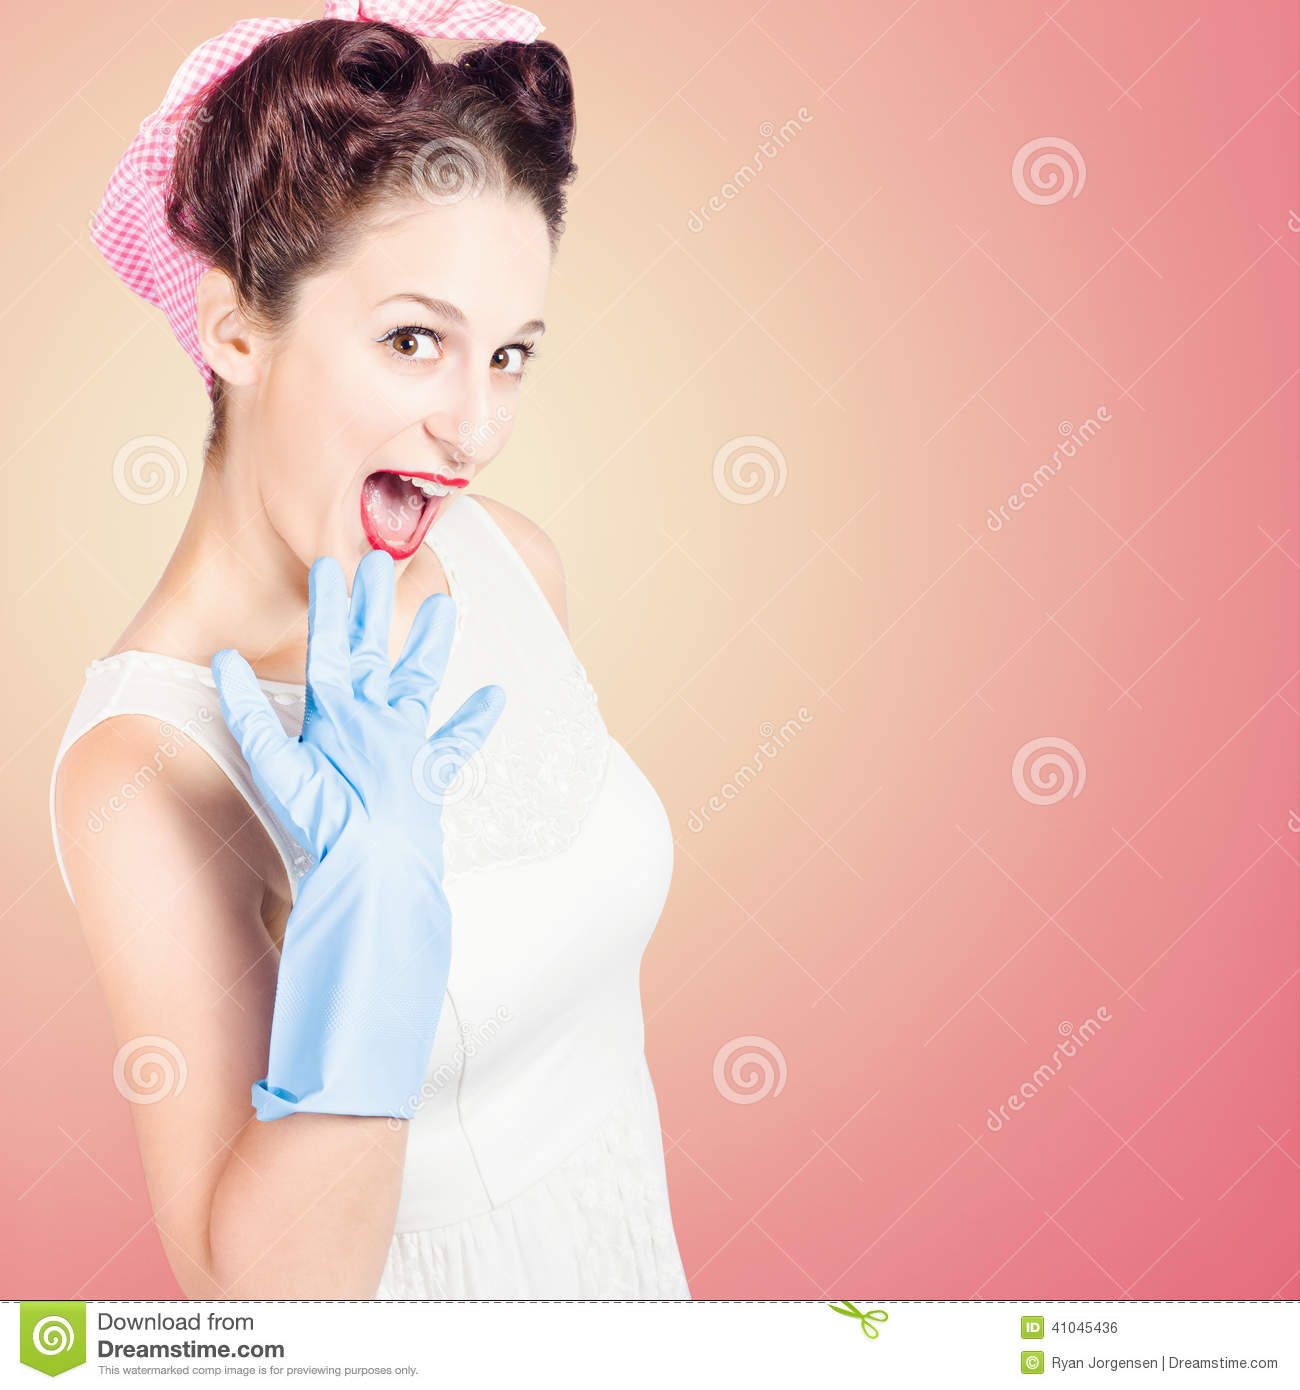 Shocked Pin-up Cleaner Girl With Funny Expression Stock